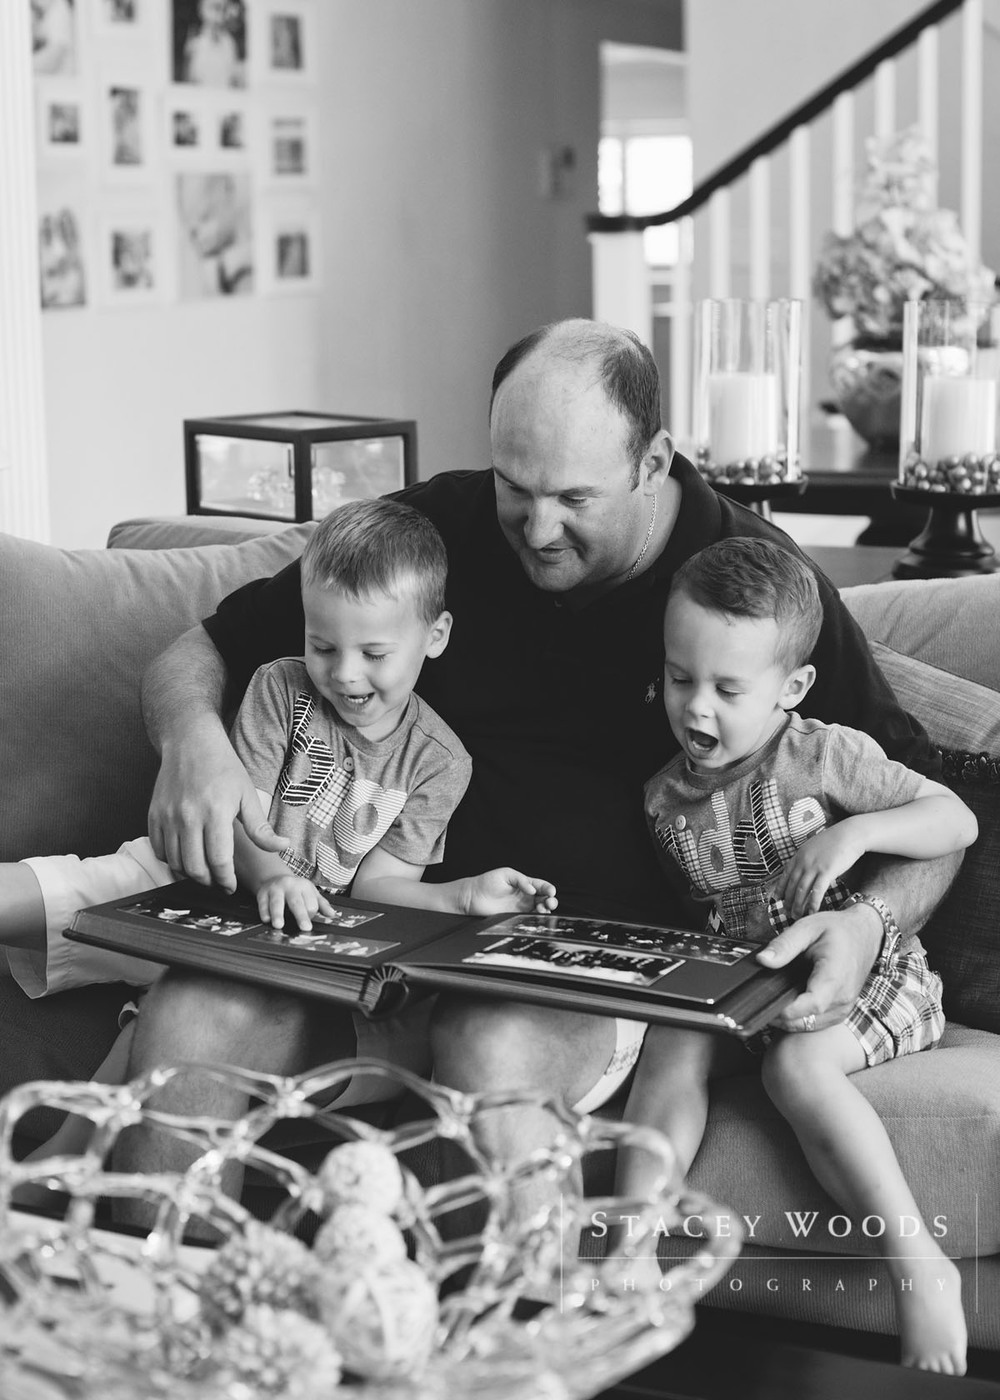 Stacey Woods family documentary photographer